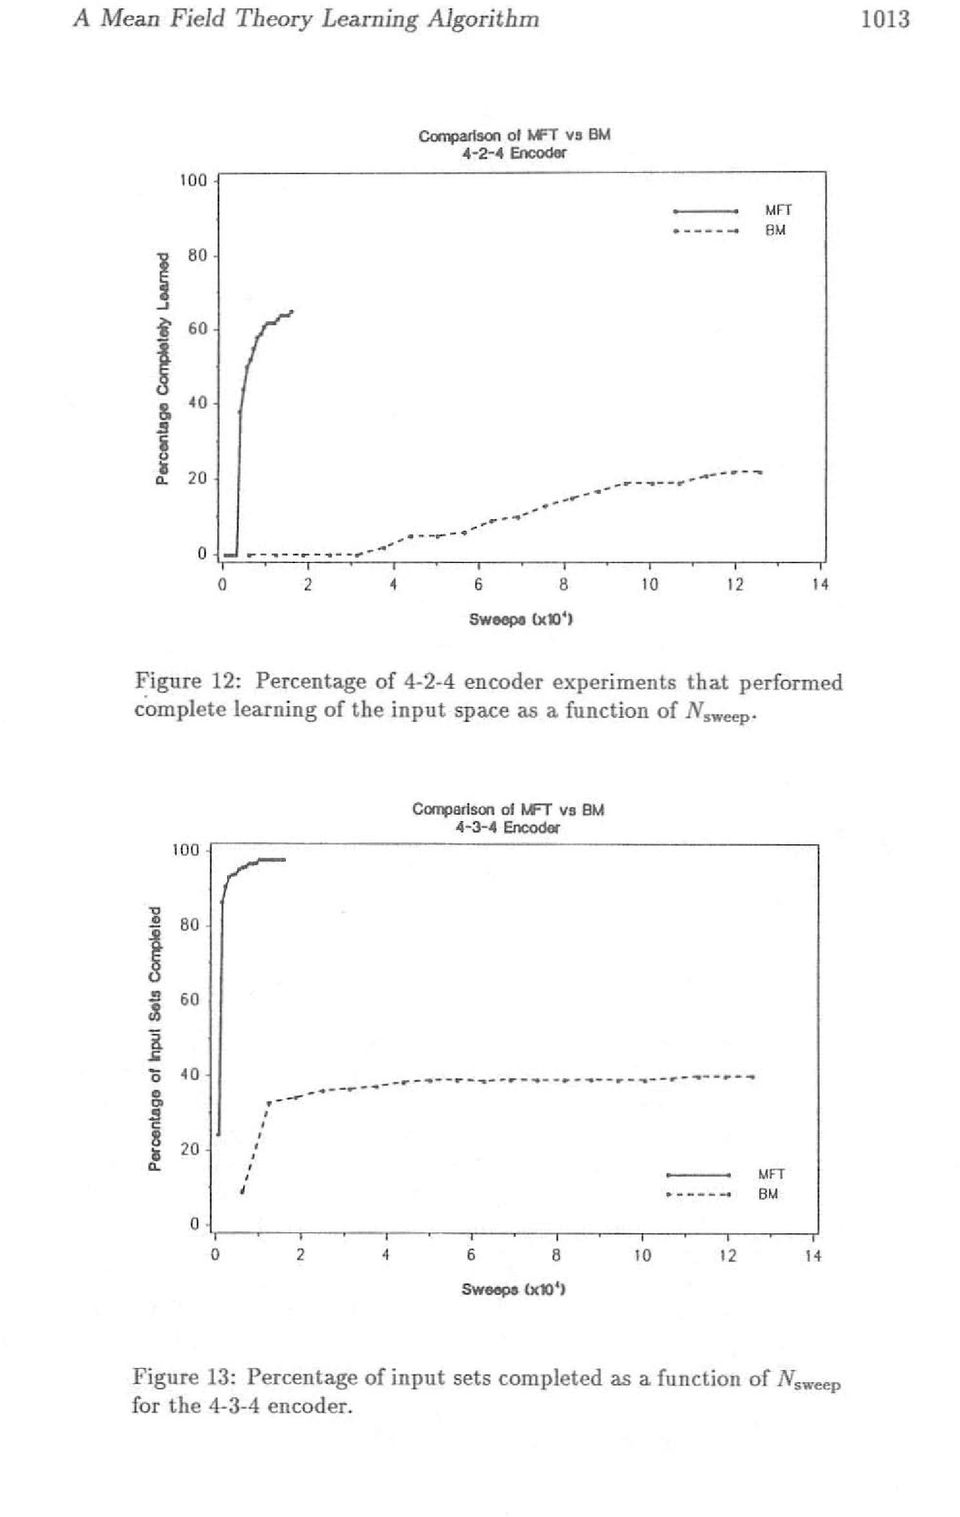 "..,, 8 10 12 SWeopI (xl)') "" Figure 12: Percentage of 4-2-4 encoder experiments that performed"